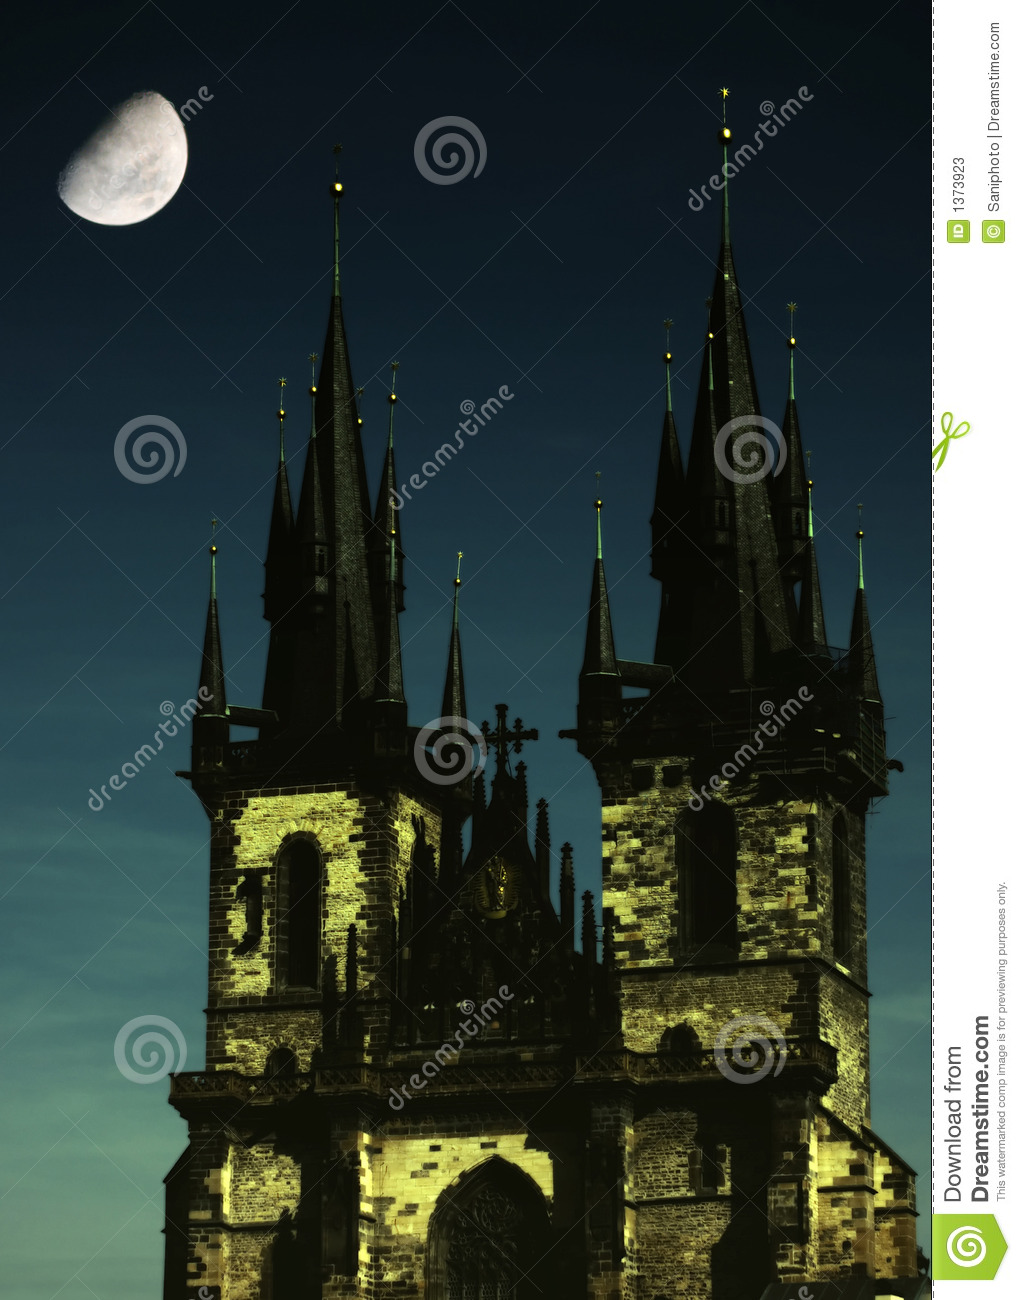 Gothic church with moon